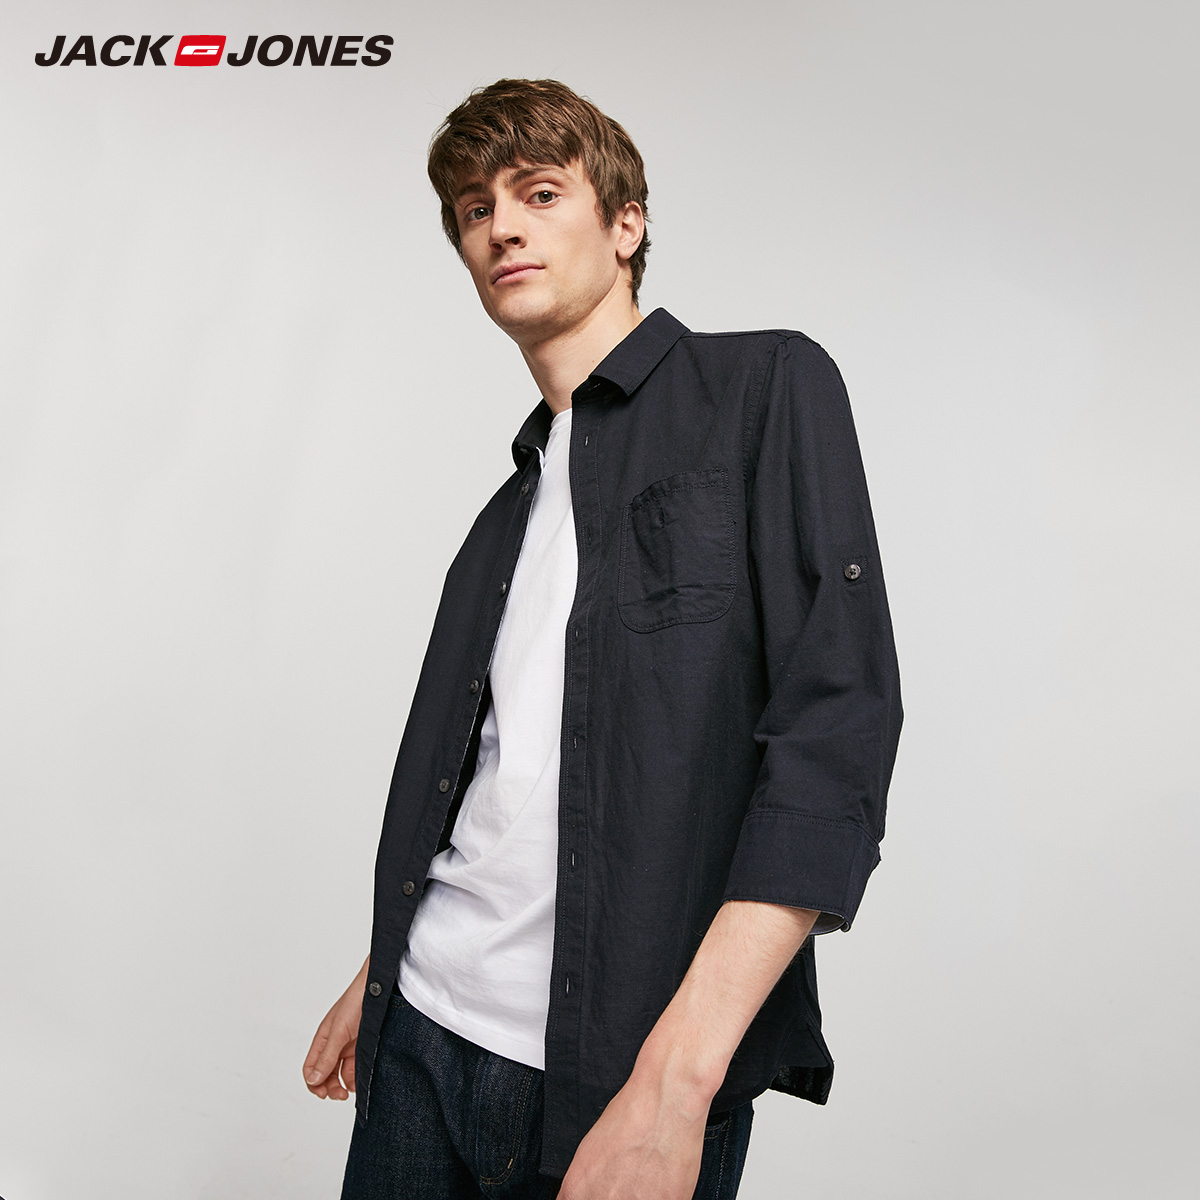 JackJones Men's Spring & Summer Cotton Linen Rolled-up 3/4 Sleeves Style Shirt| 219231503